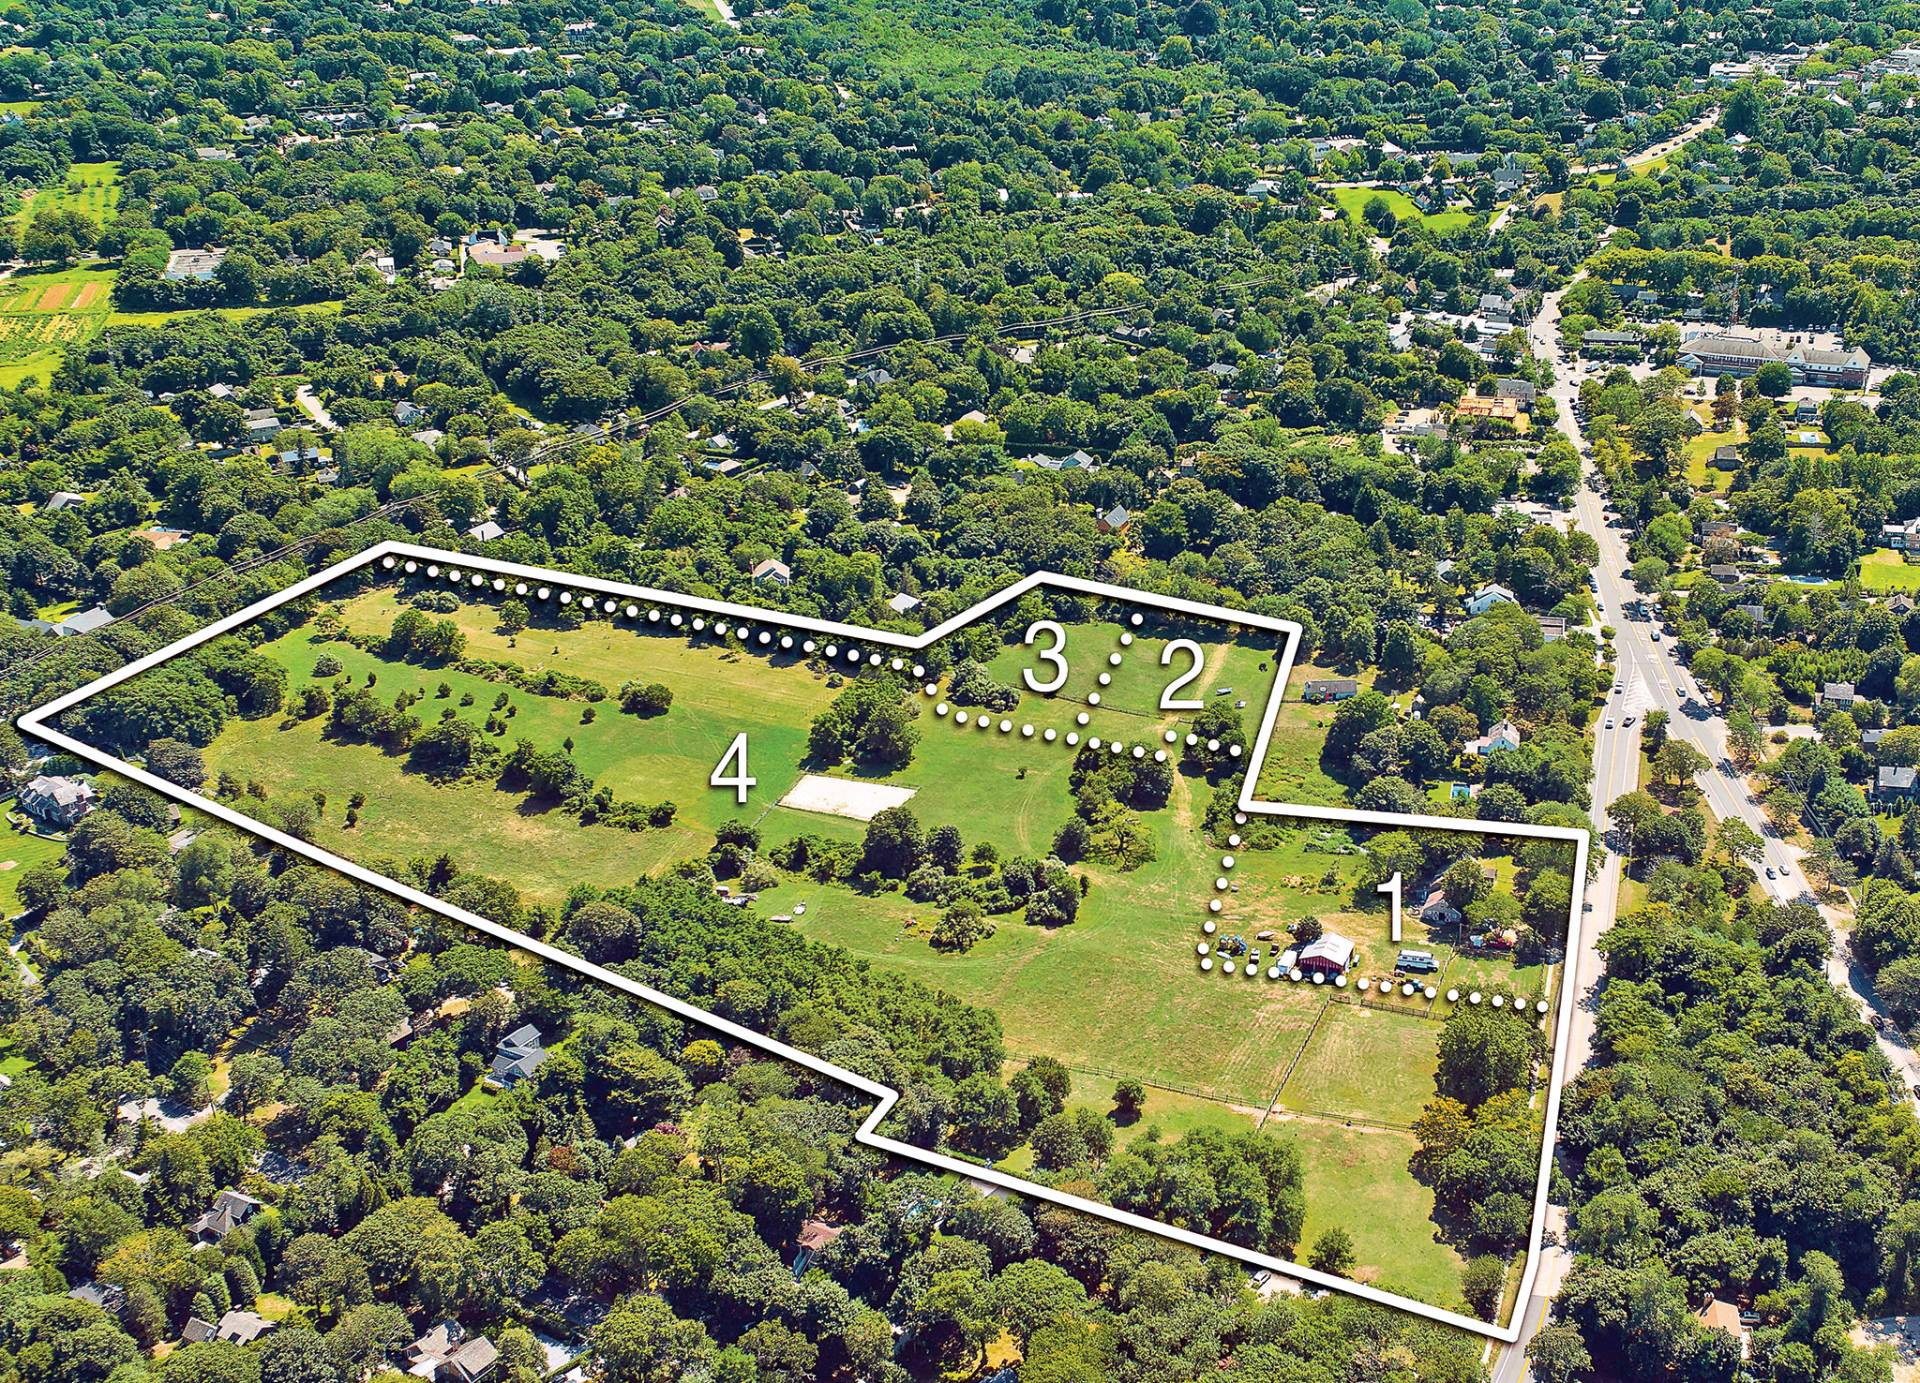 Land for Sale at 20+/- Acres, Many Possibilities 20 Springs Fireplace Road, East Hampton, New York